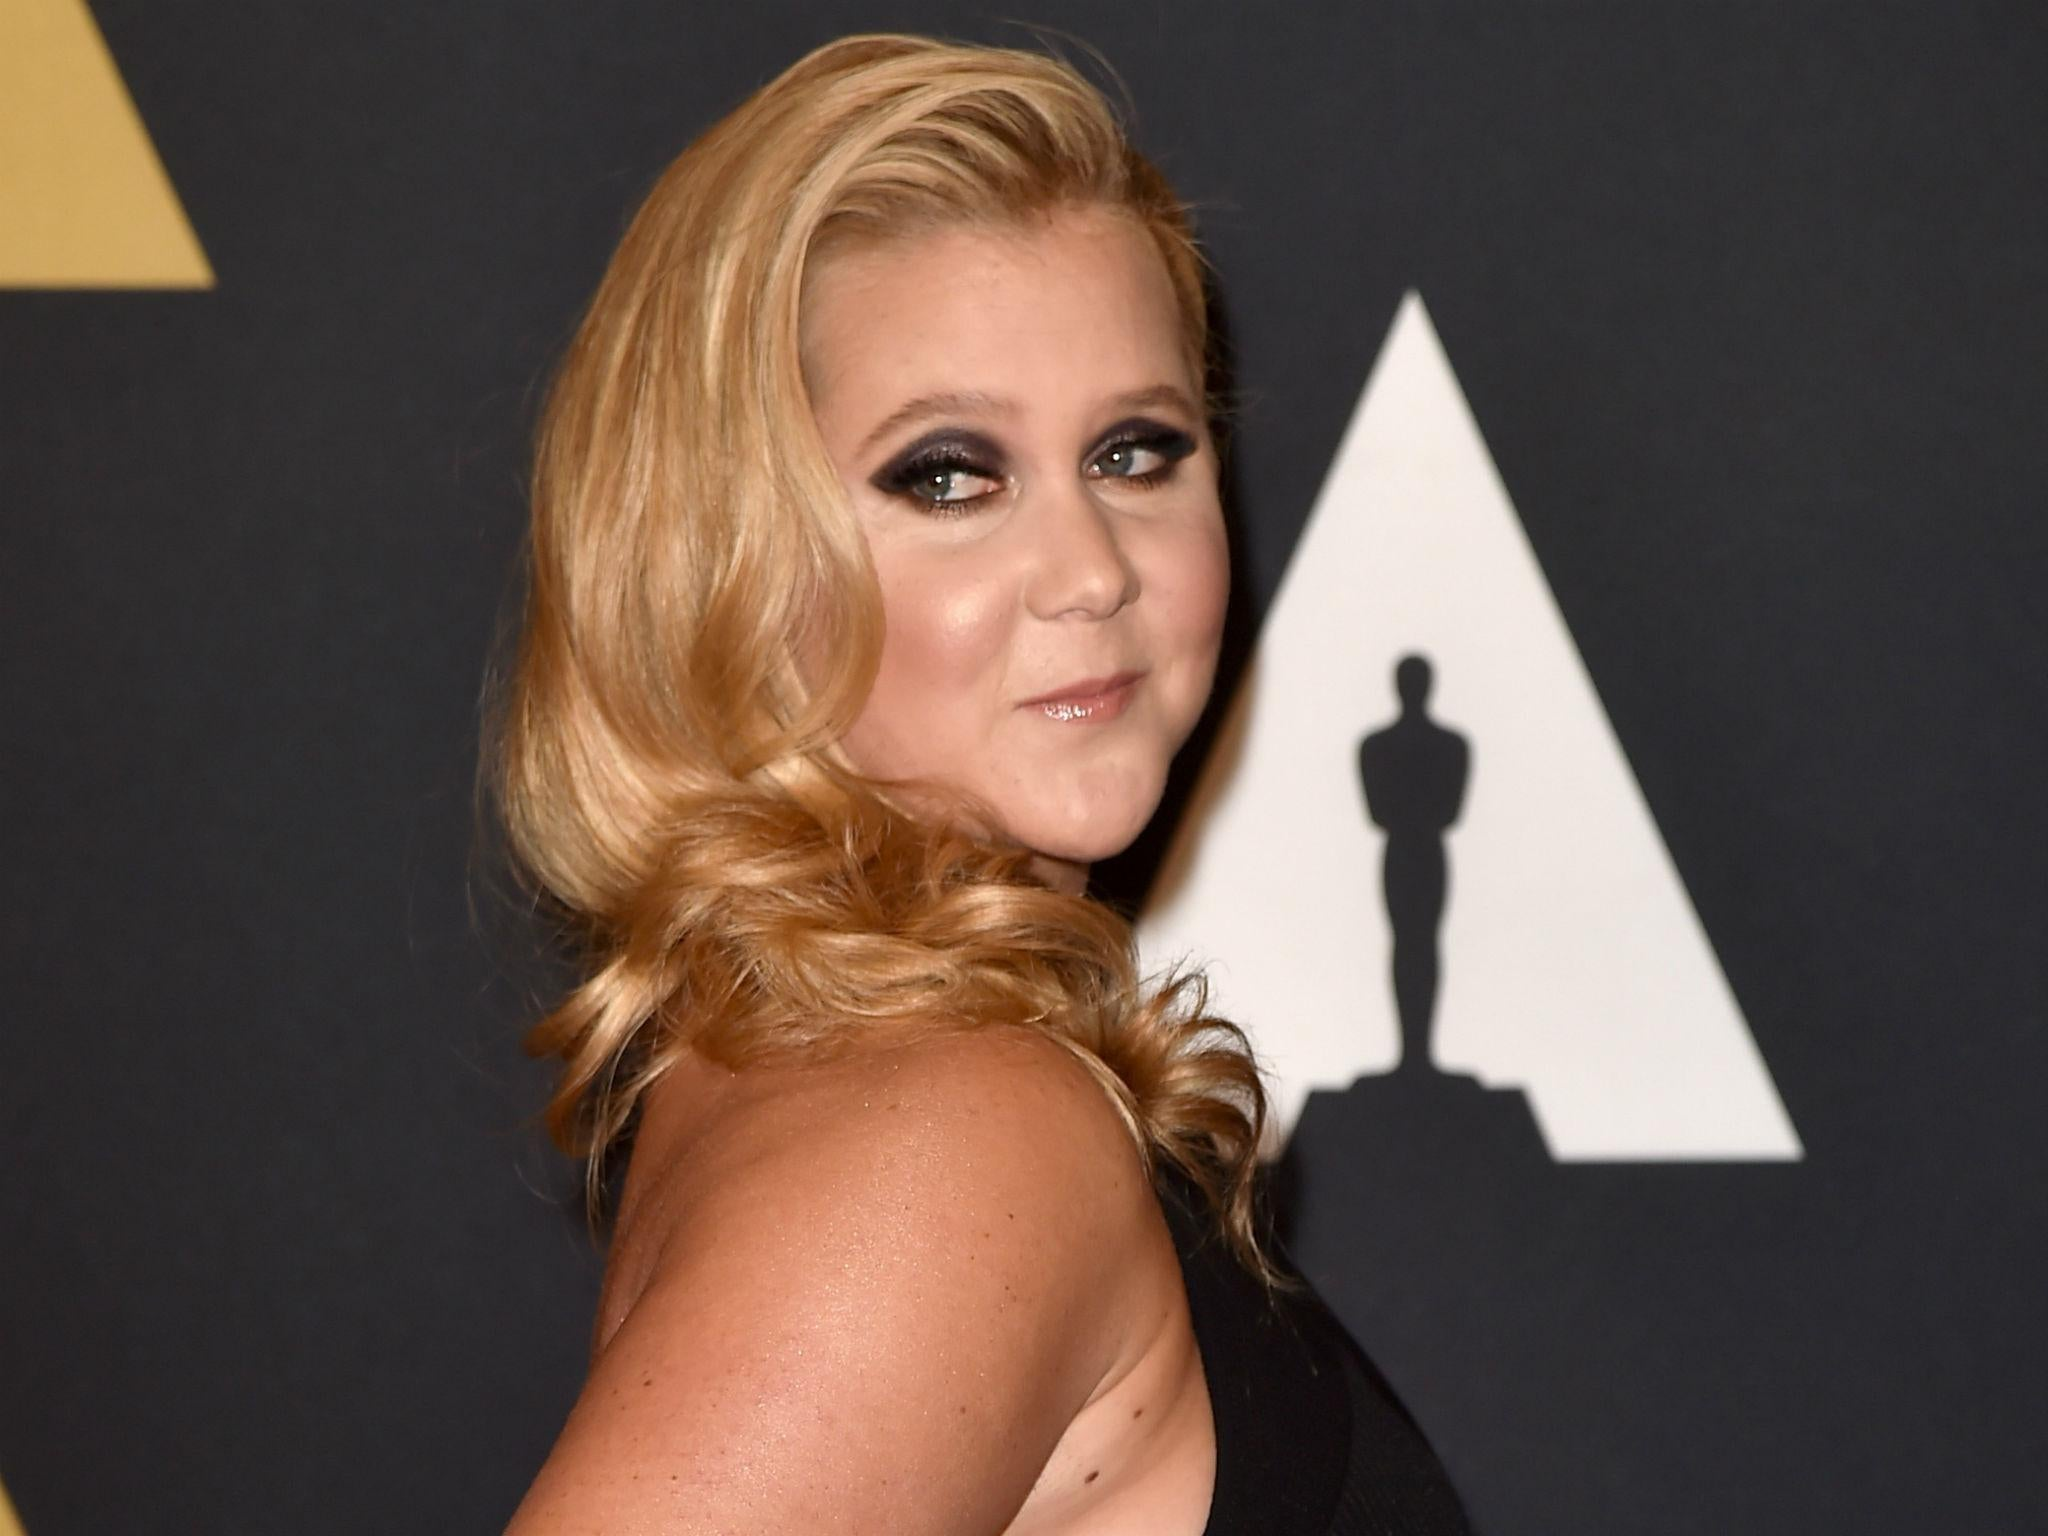 Amy Schumer Sex Video amy schumer says she'll only take photos with 'nice' fans